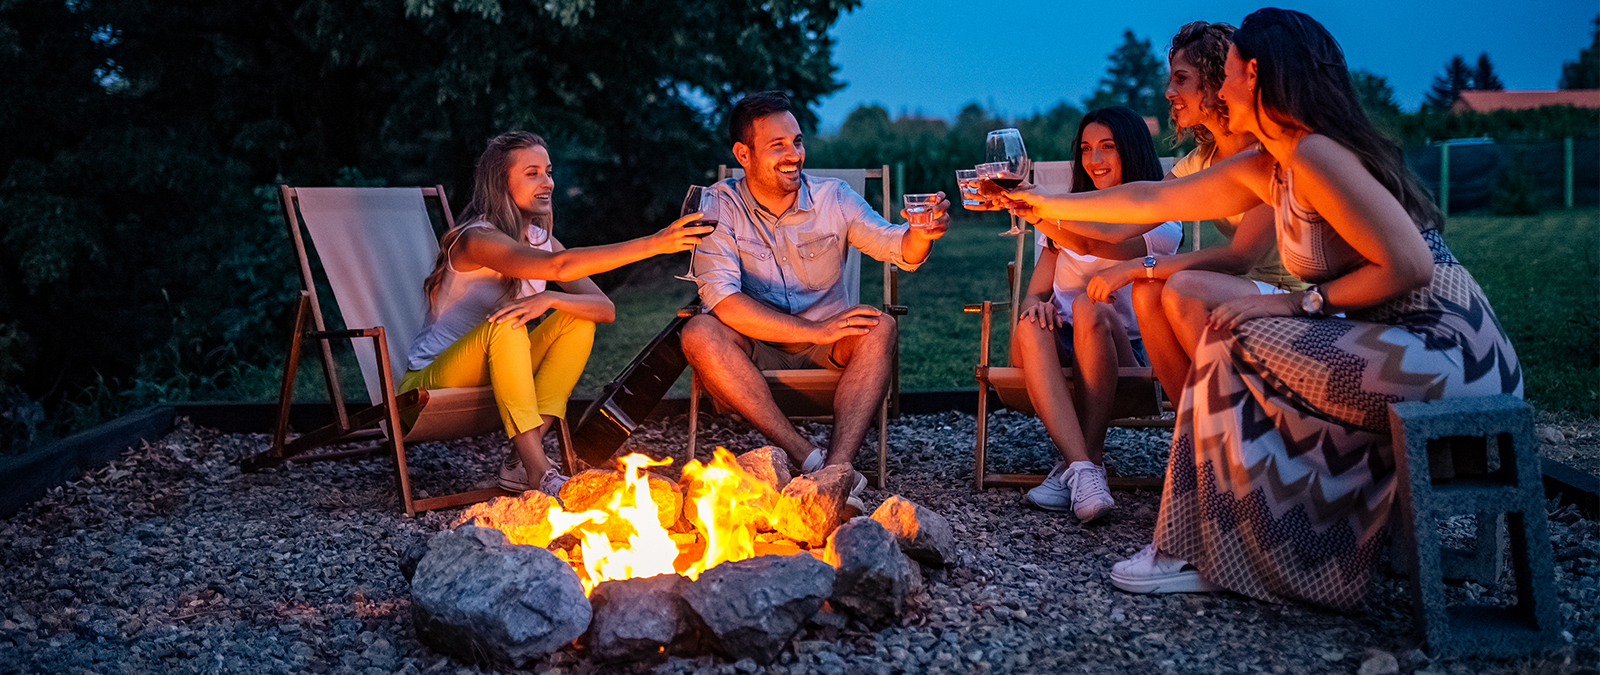 Enjoying backyard fires Options to Suit Your Space